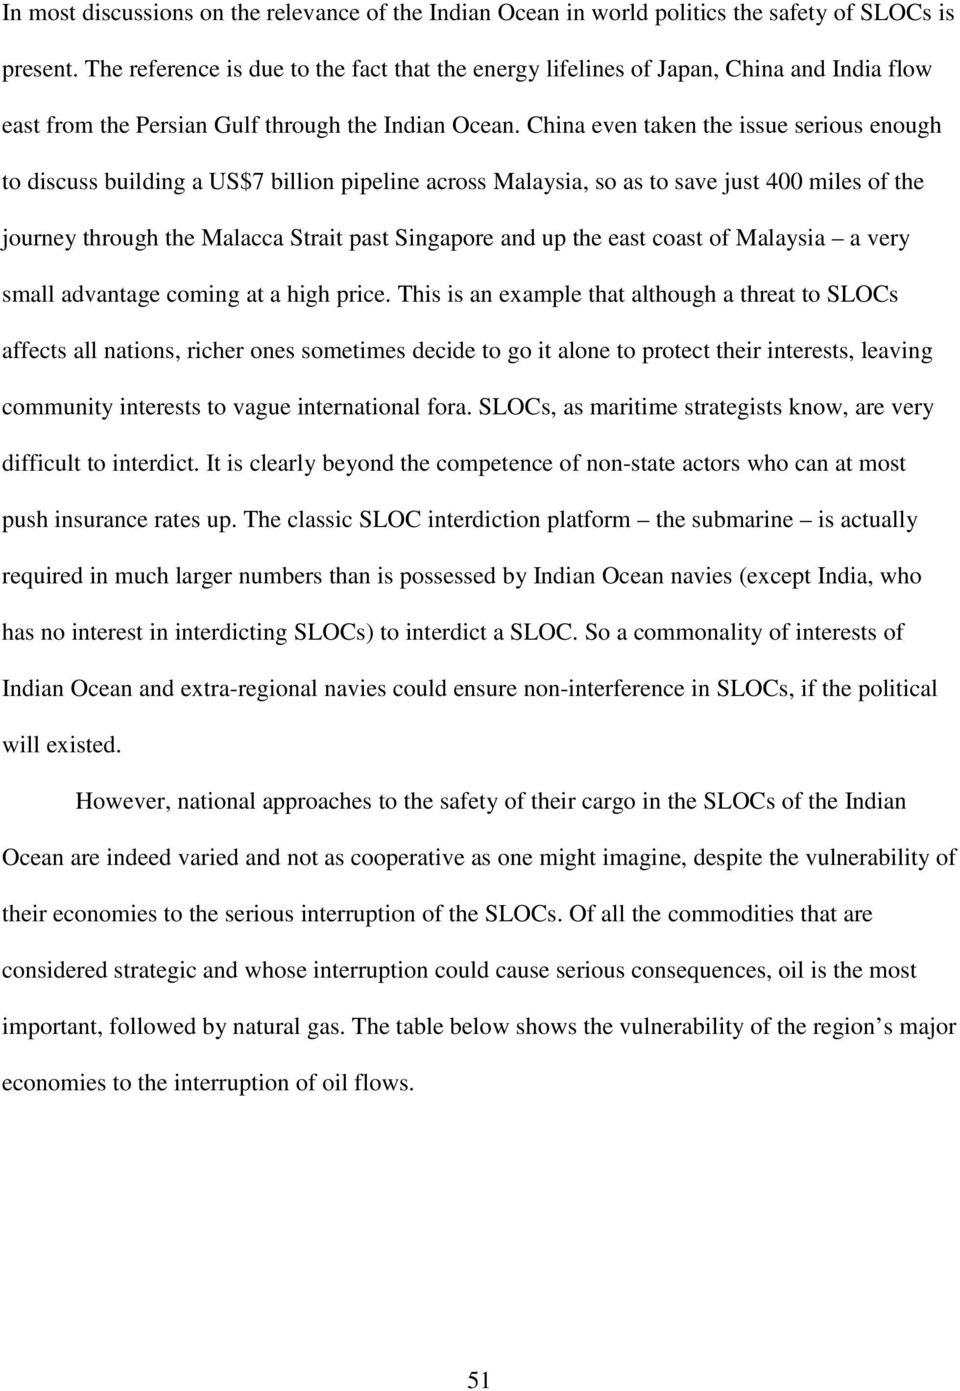 China even taken the issue serious enough to discuss building a US$7 billion pipeline across Malaysia, so as to save just 400 miles of the journey through the Malacca Strait past Singapore and up the